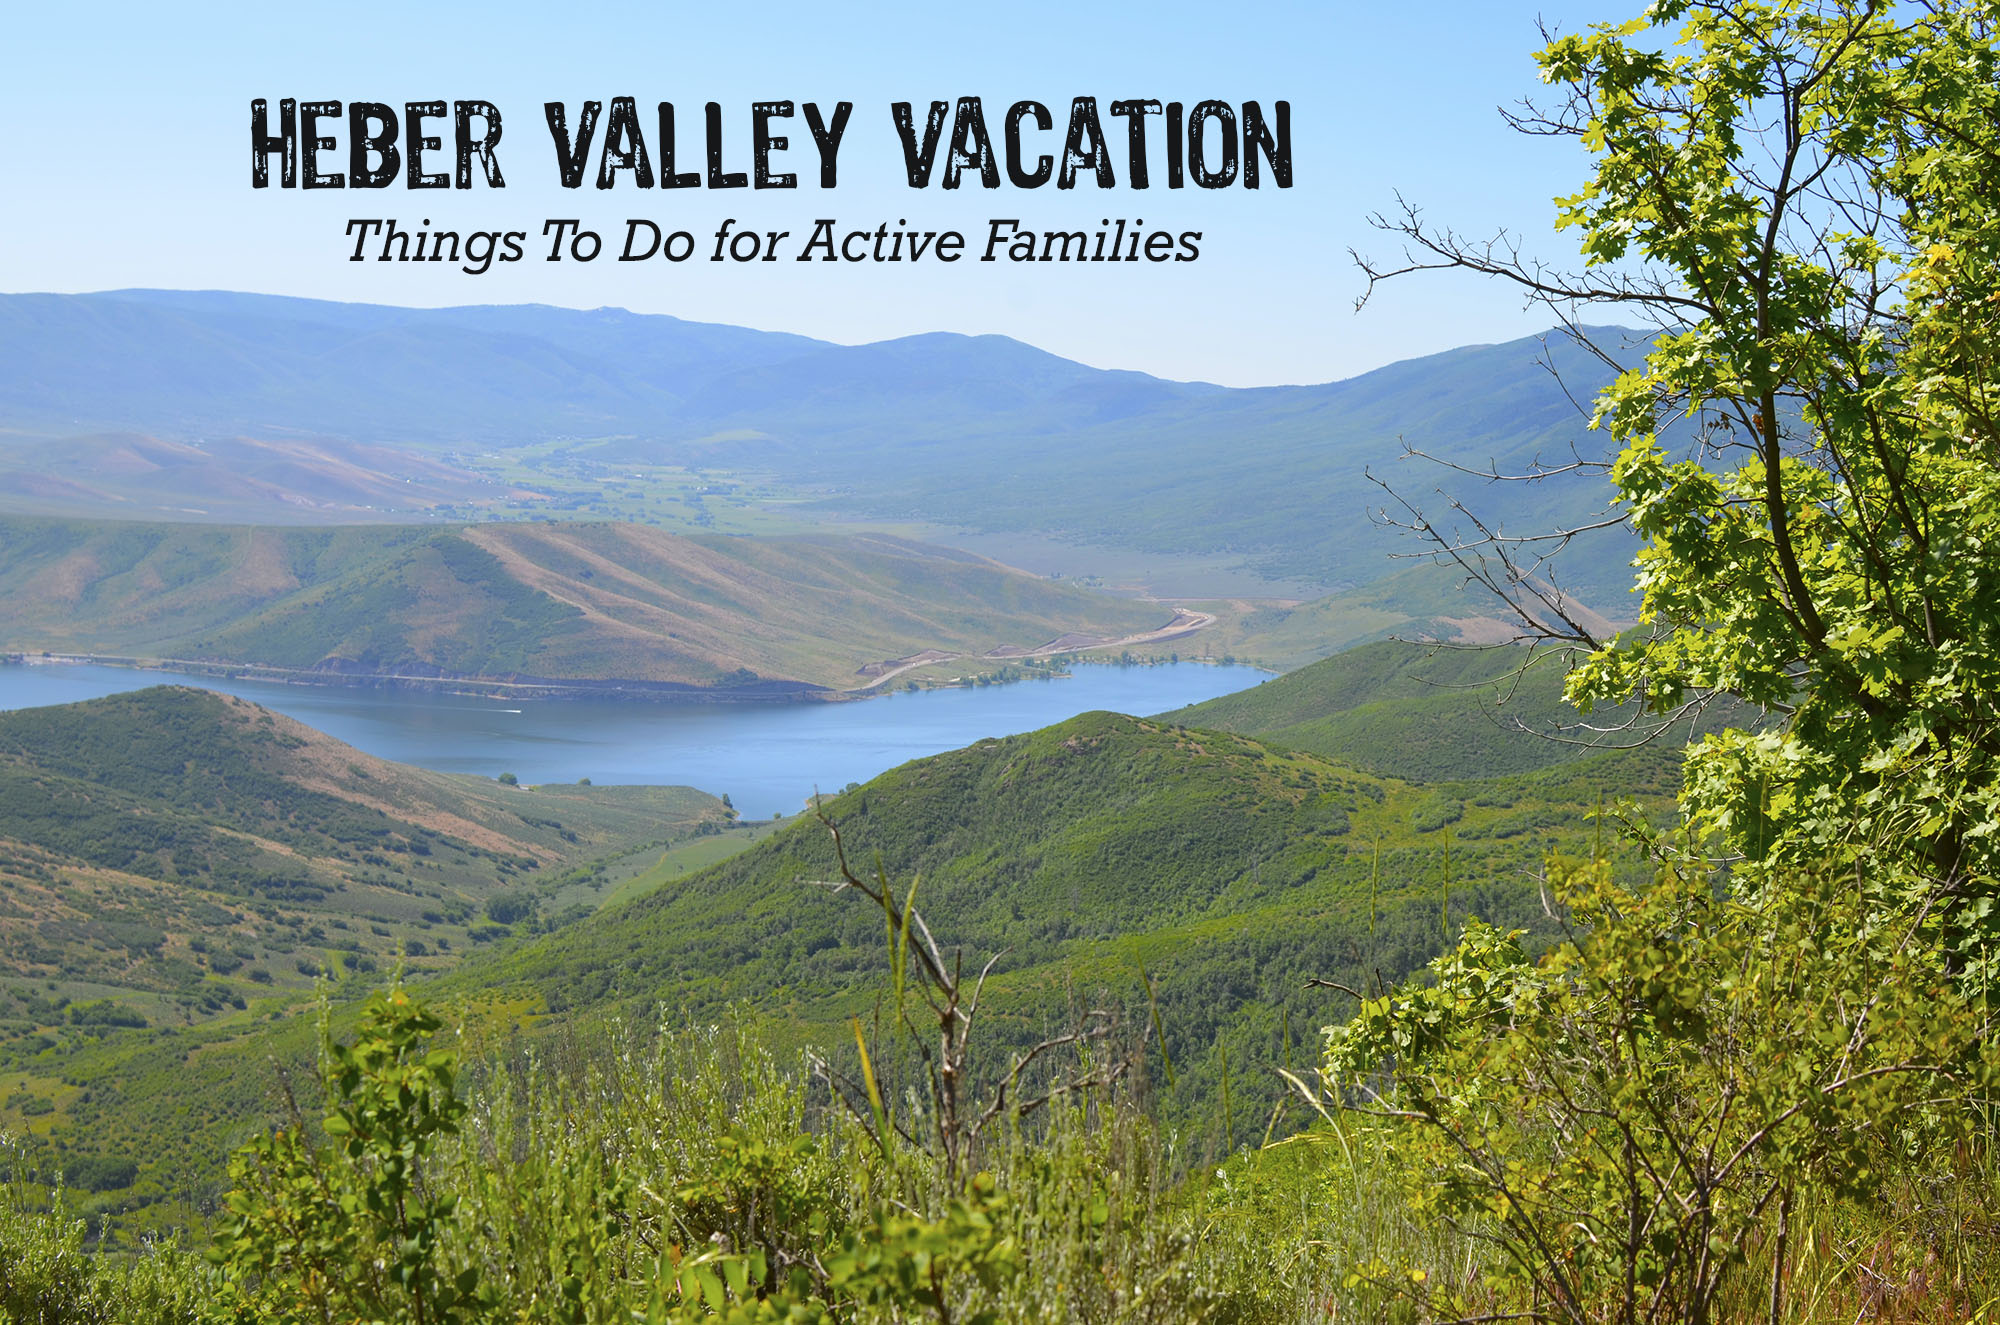 Things To Do In Heber Valley Utah For Active Families